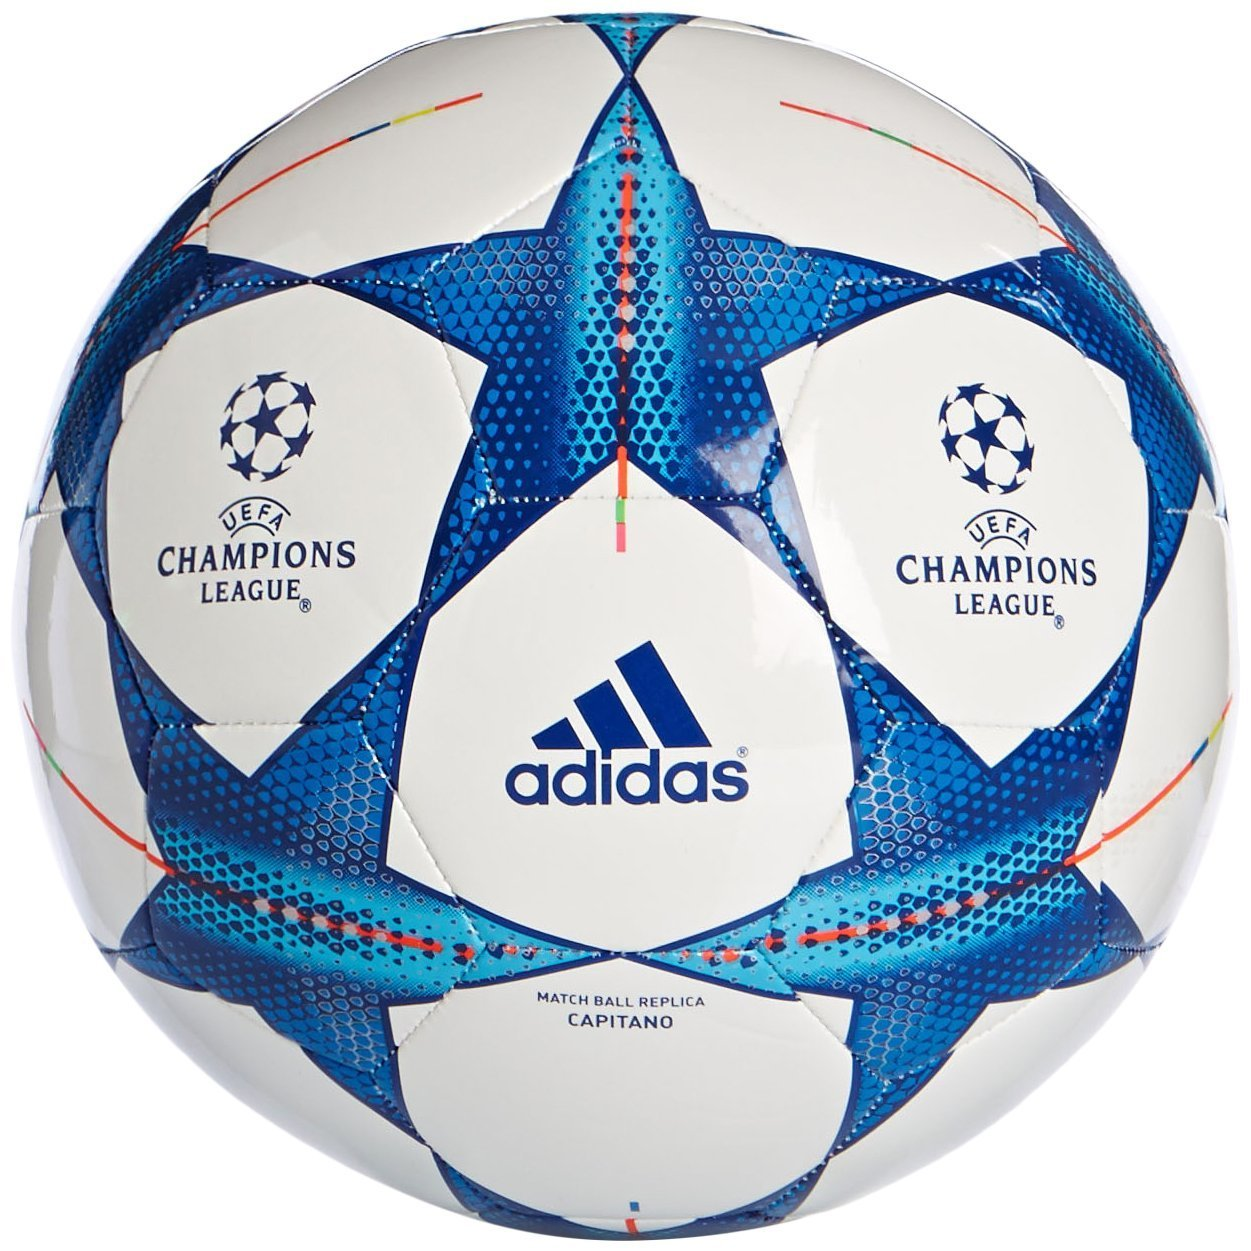 19e39e3cf Buy Adidas Fincap UEFA Champions League Football Match Ball Replica  (Multicolour) Online at Low Prices in India - Amazon.in